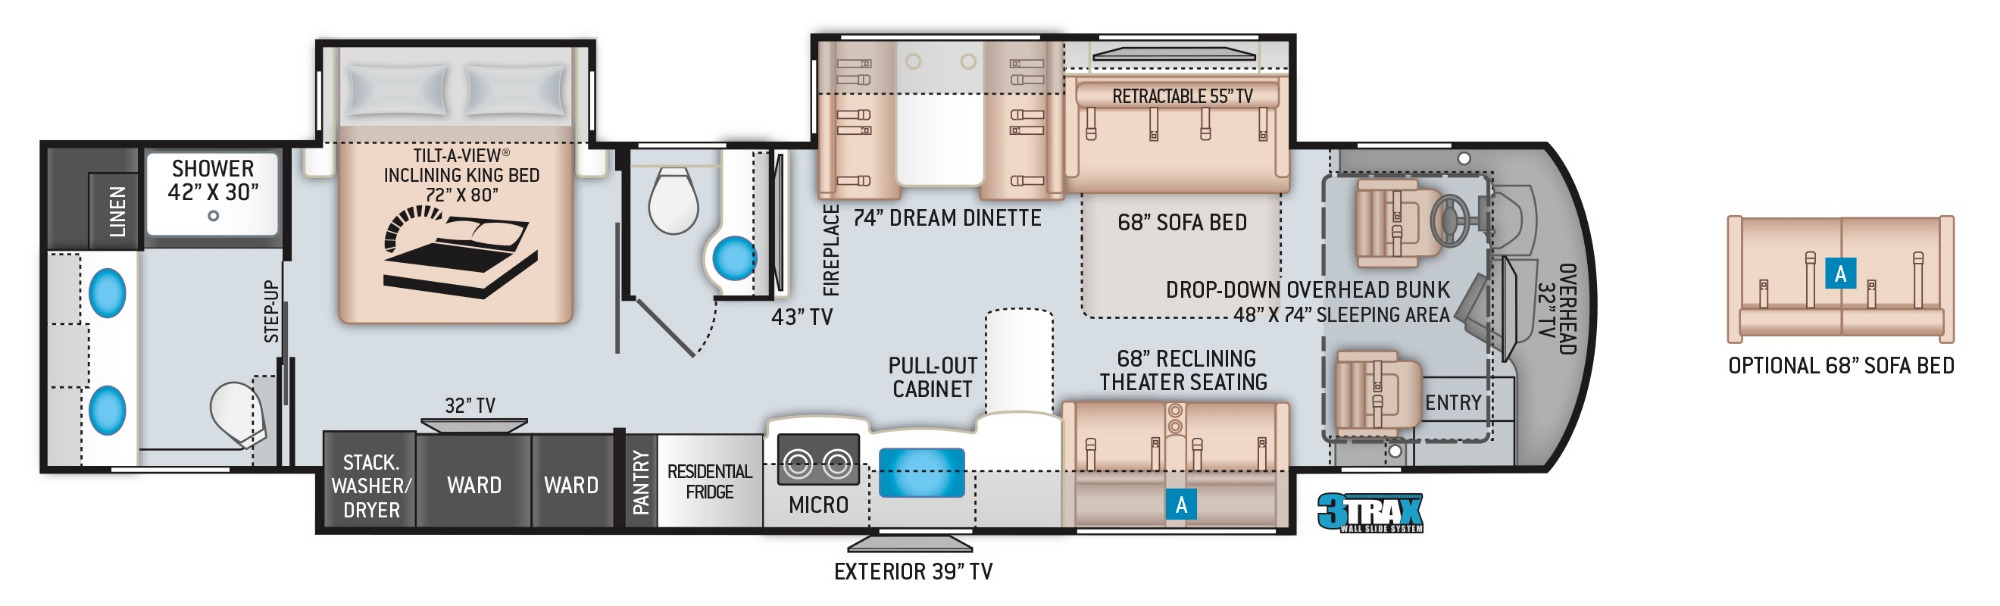 View Floor Plan for 2022 THOR ARIA 3901